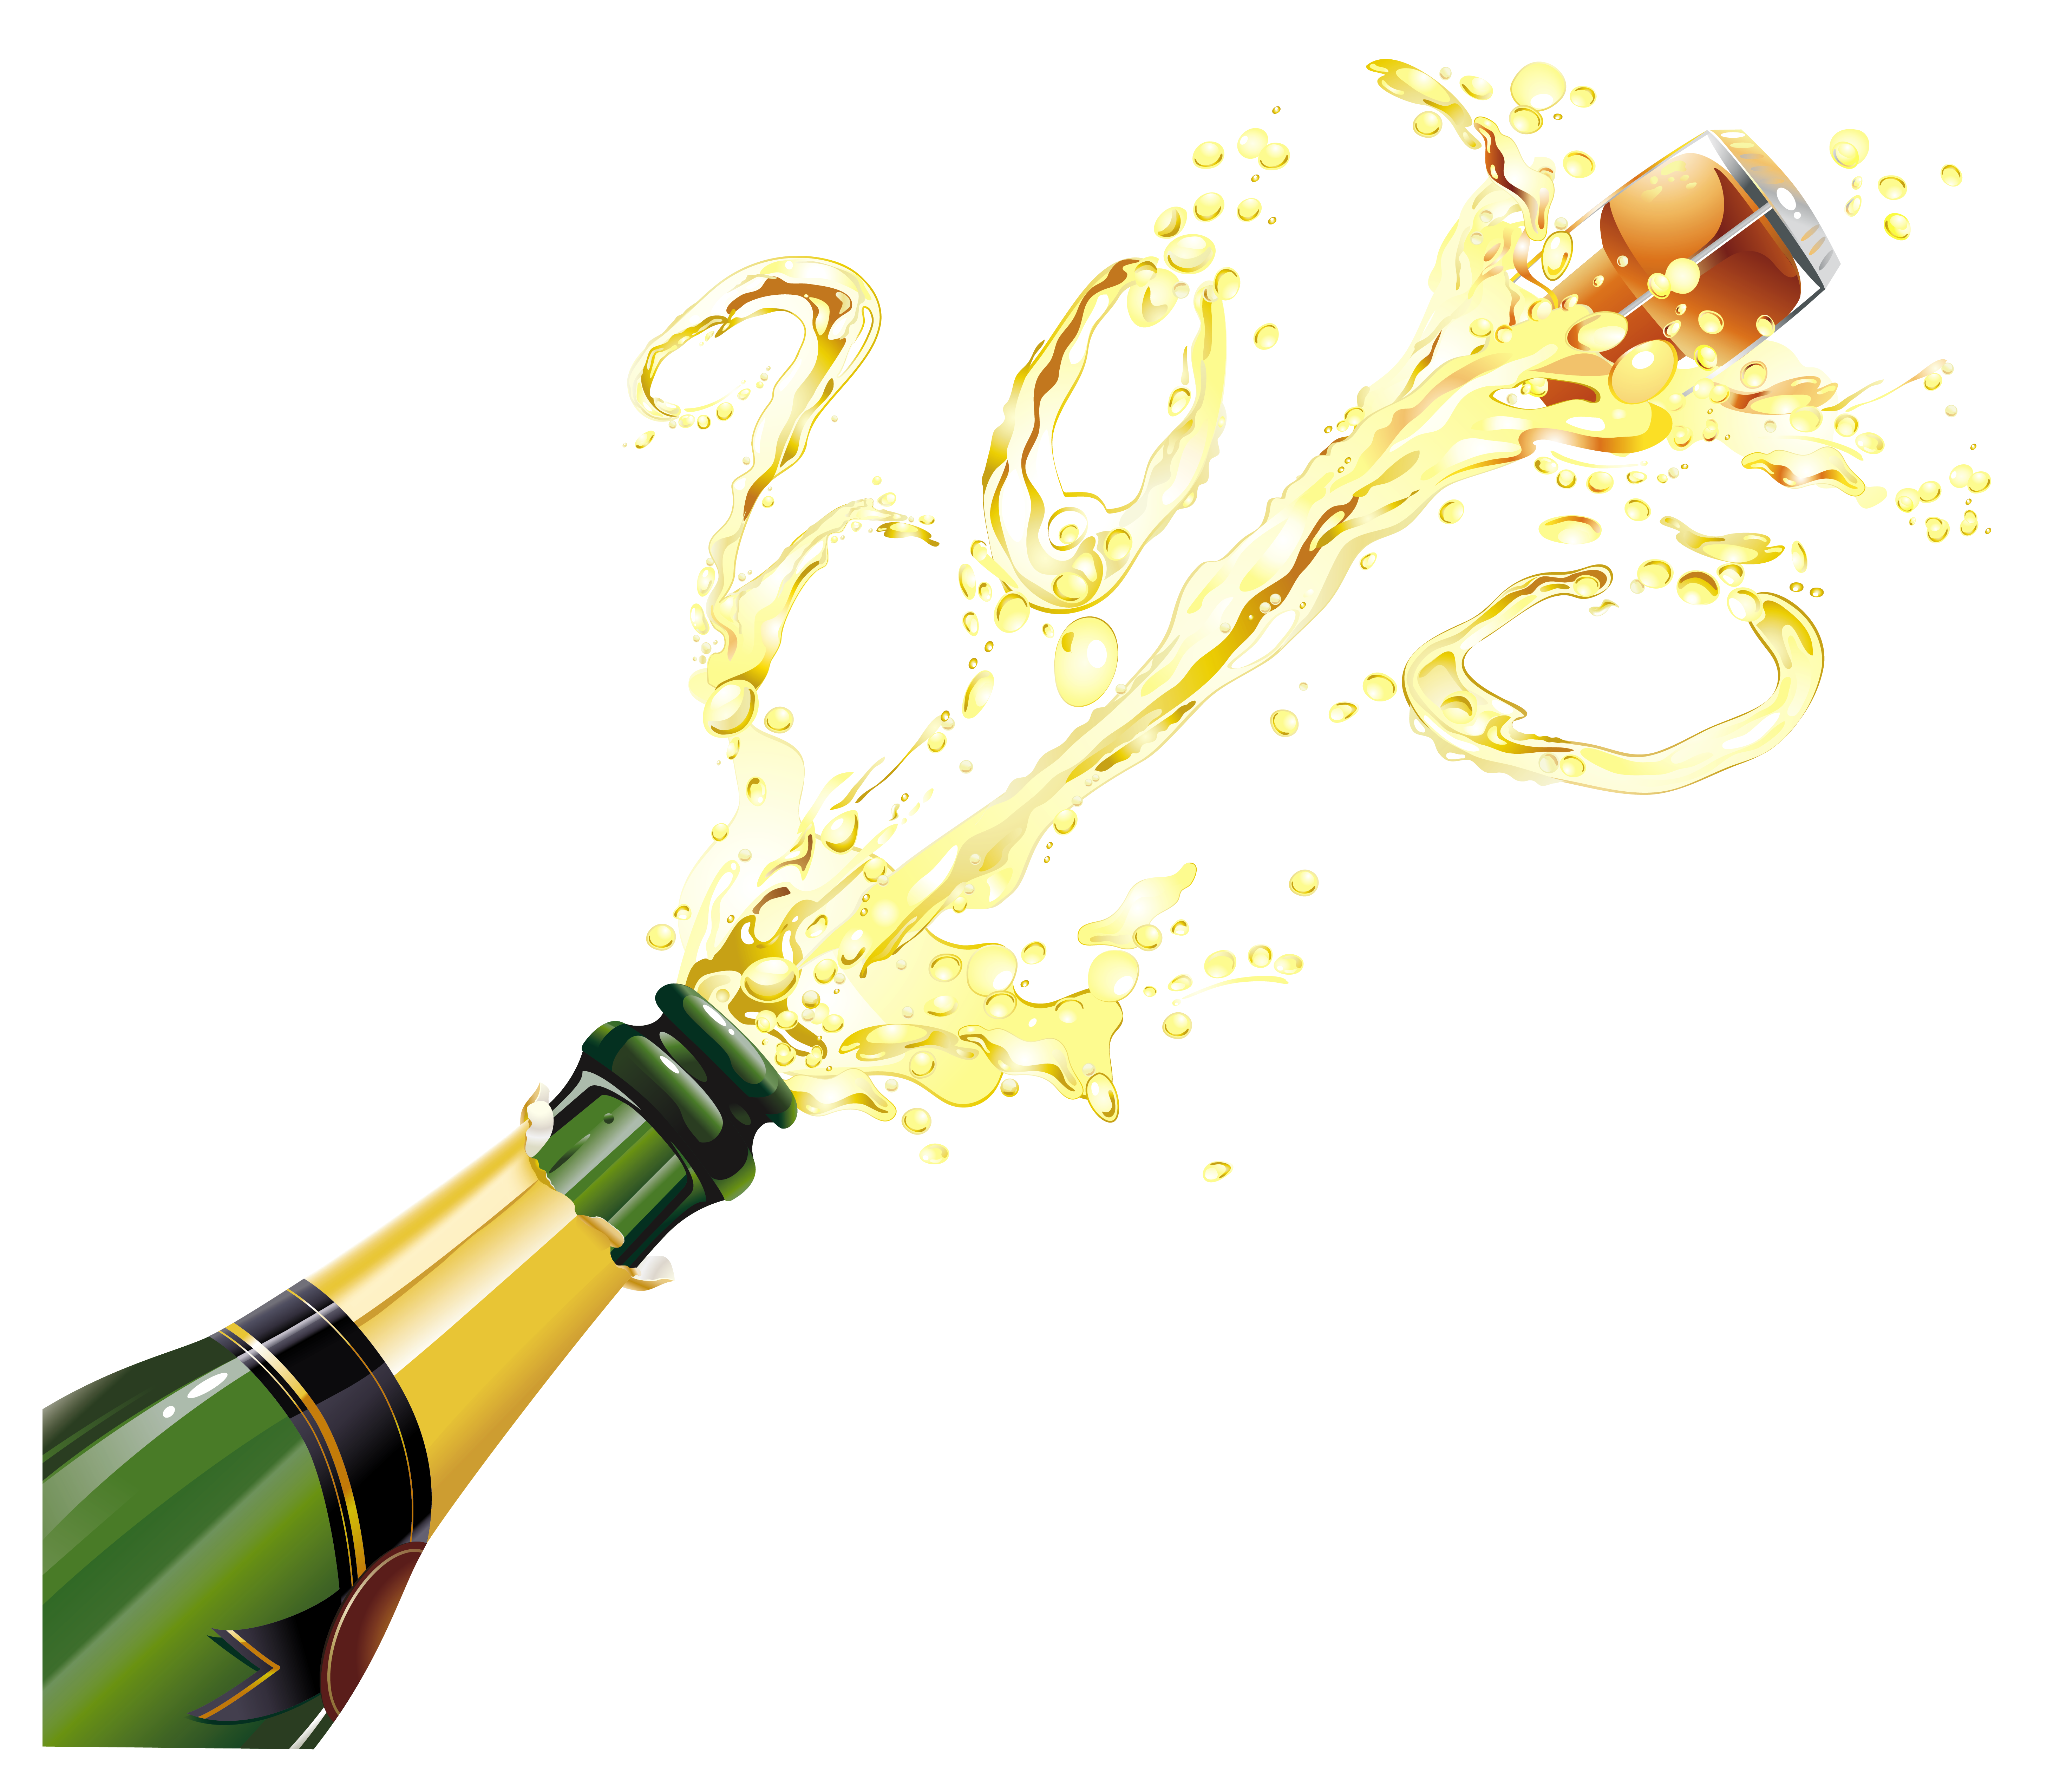 Champagne bottle png. Photo arts